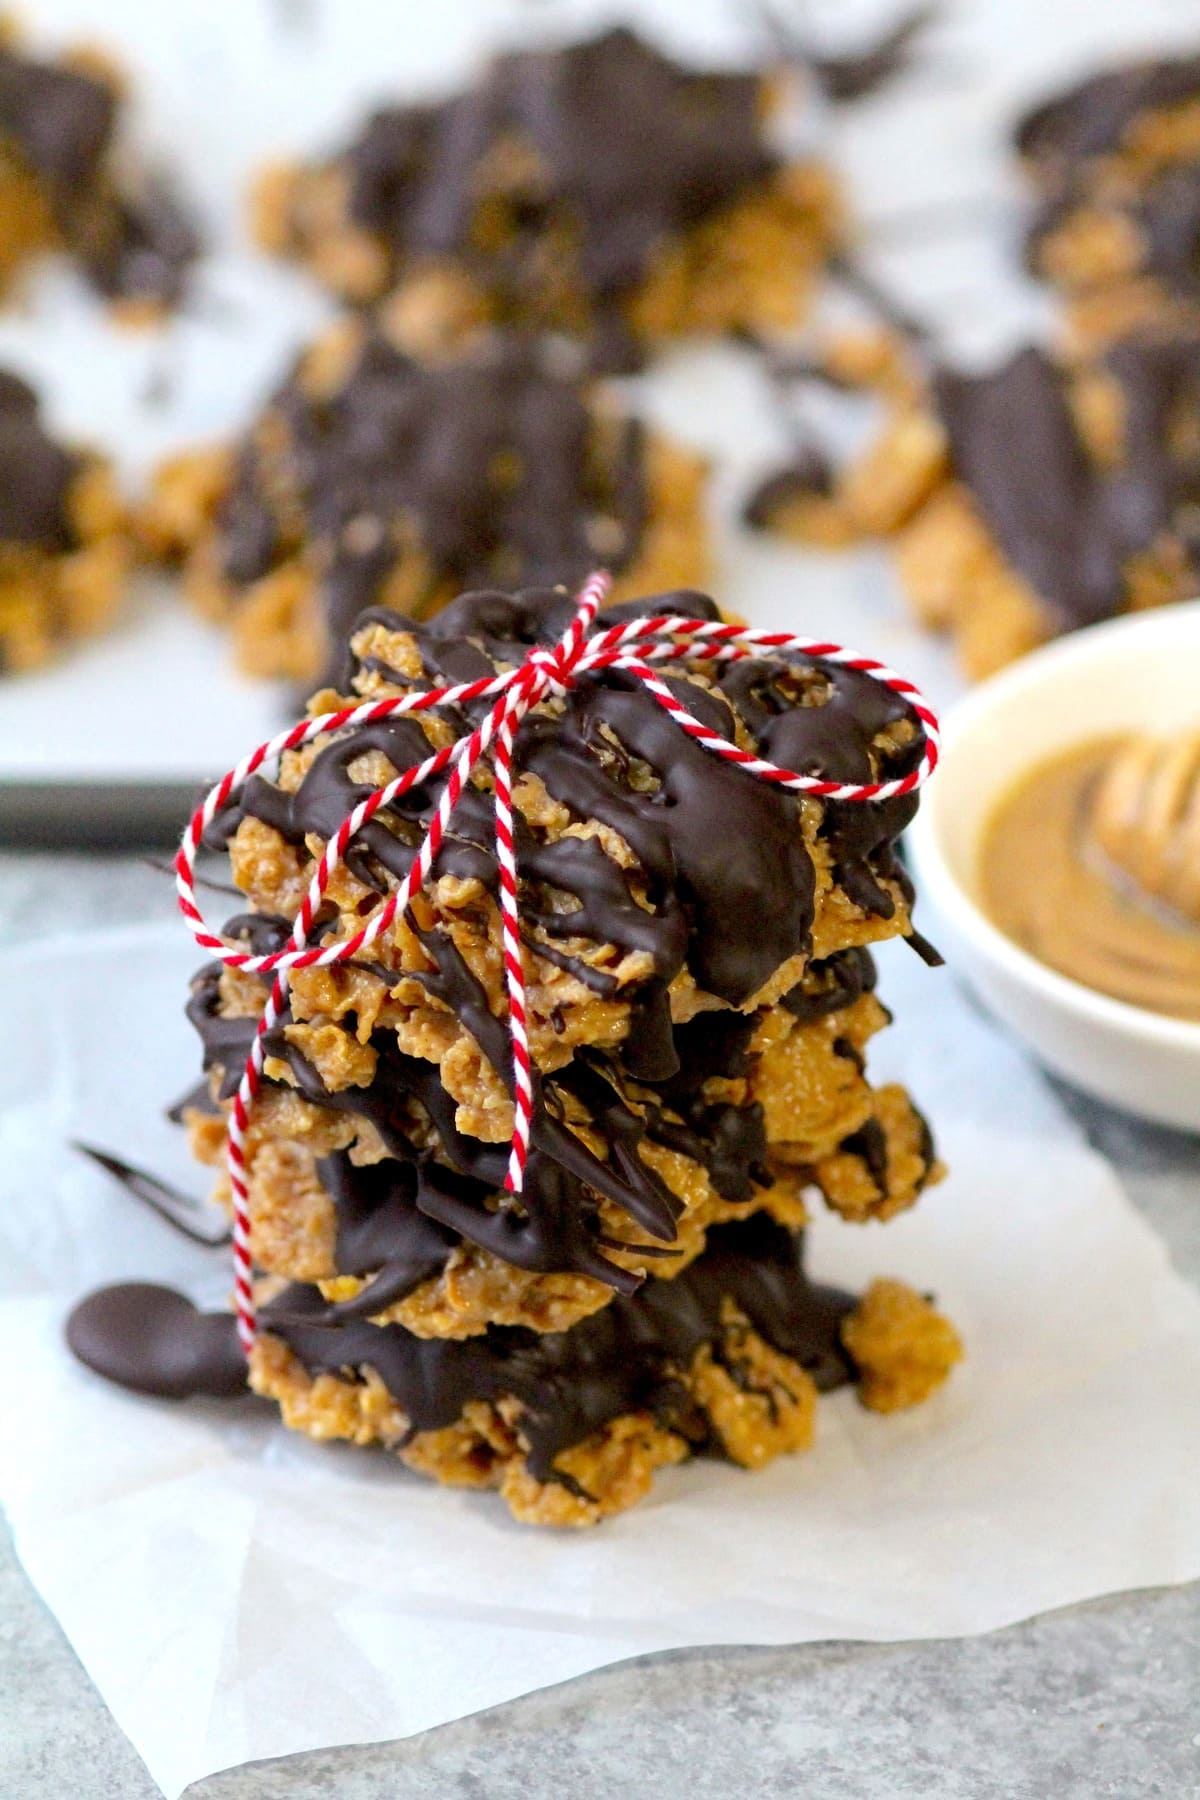 crispy, crunchy, yet ooey and gooey peanut butter + chocolate crunch cookies {aka special k or scotcharoo cookies} made with only five, wholesome ingredients; no syrup or sugar additives!